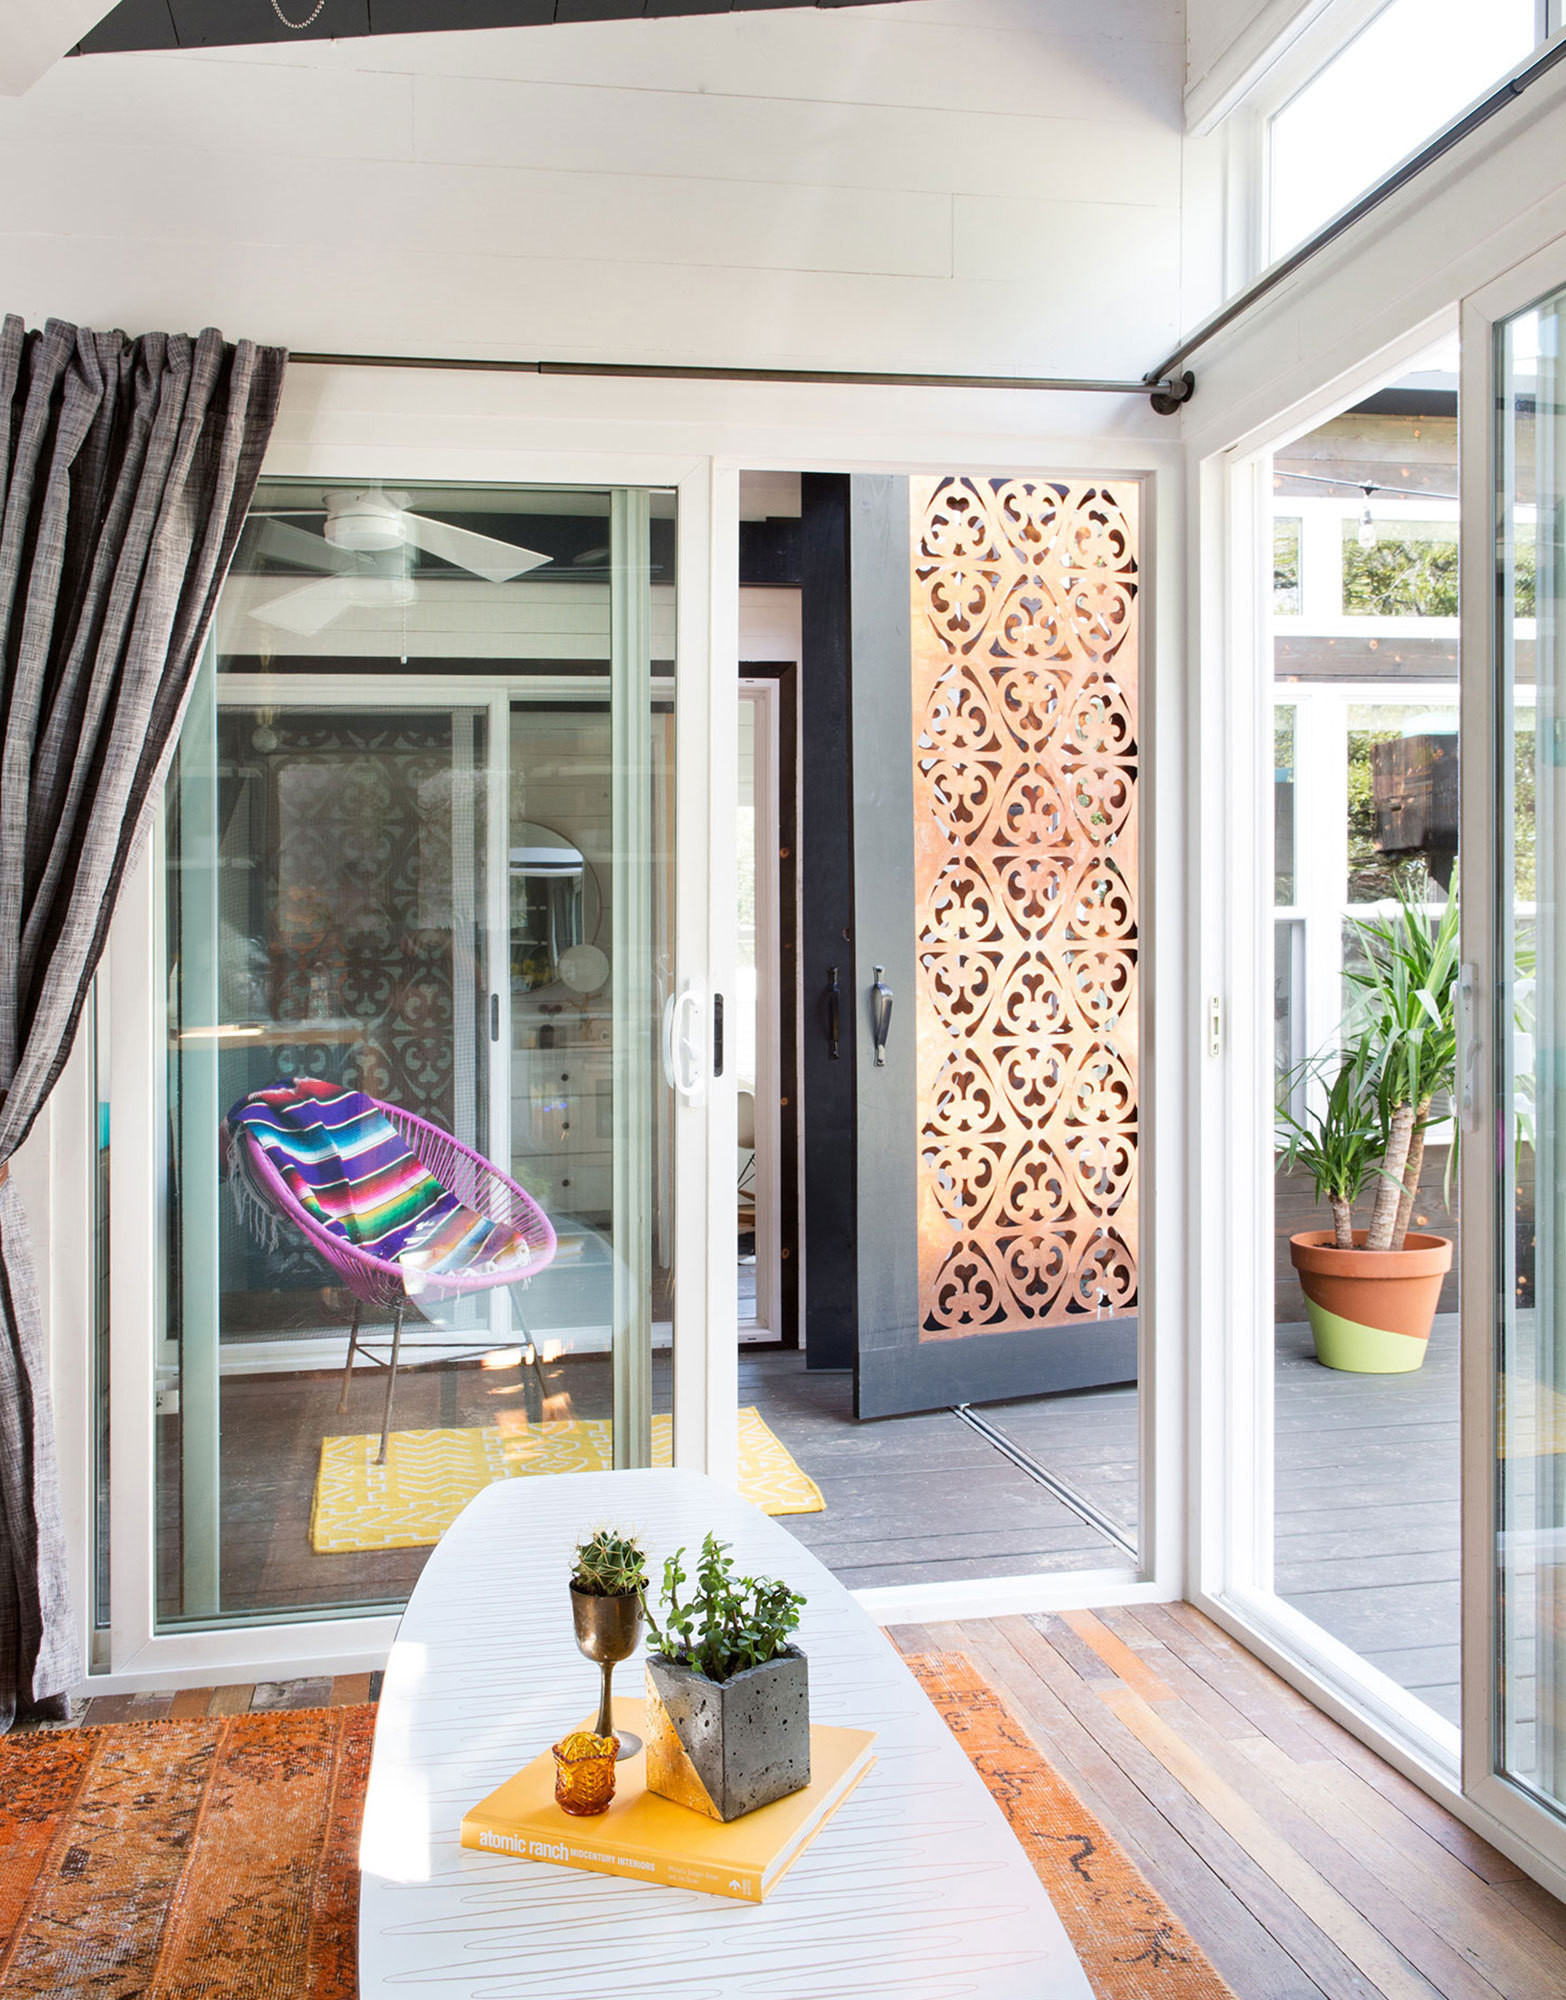 Sliding doors turn the deck into a true extension of the home.